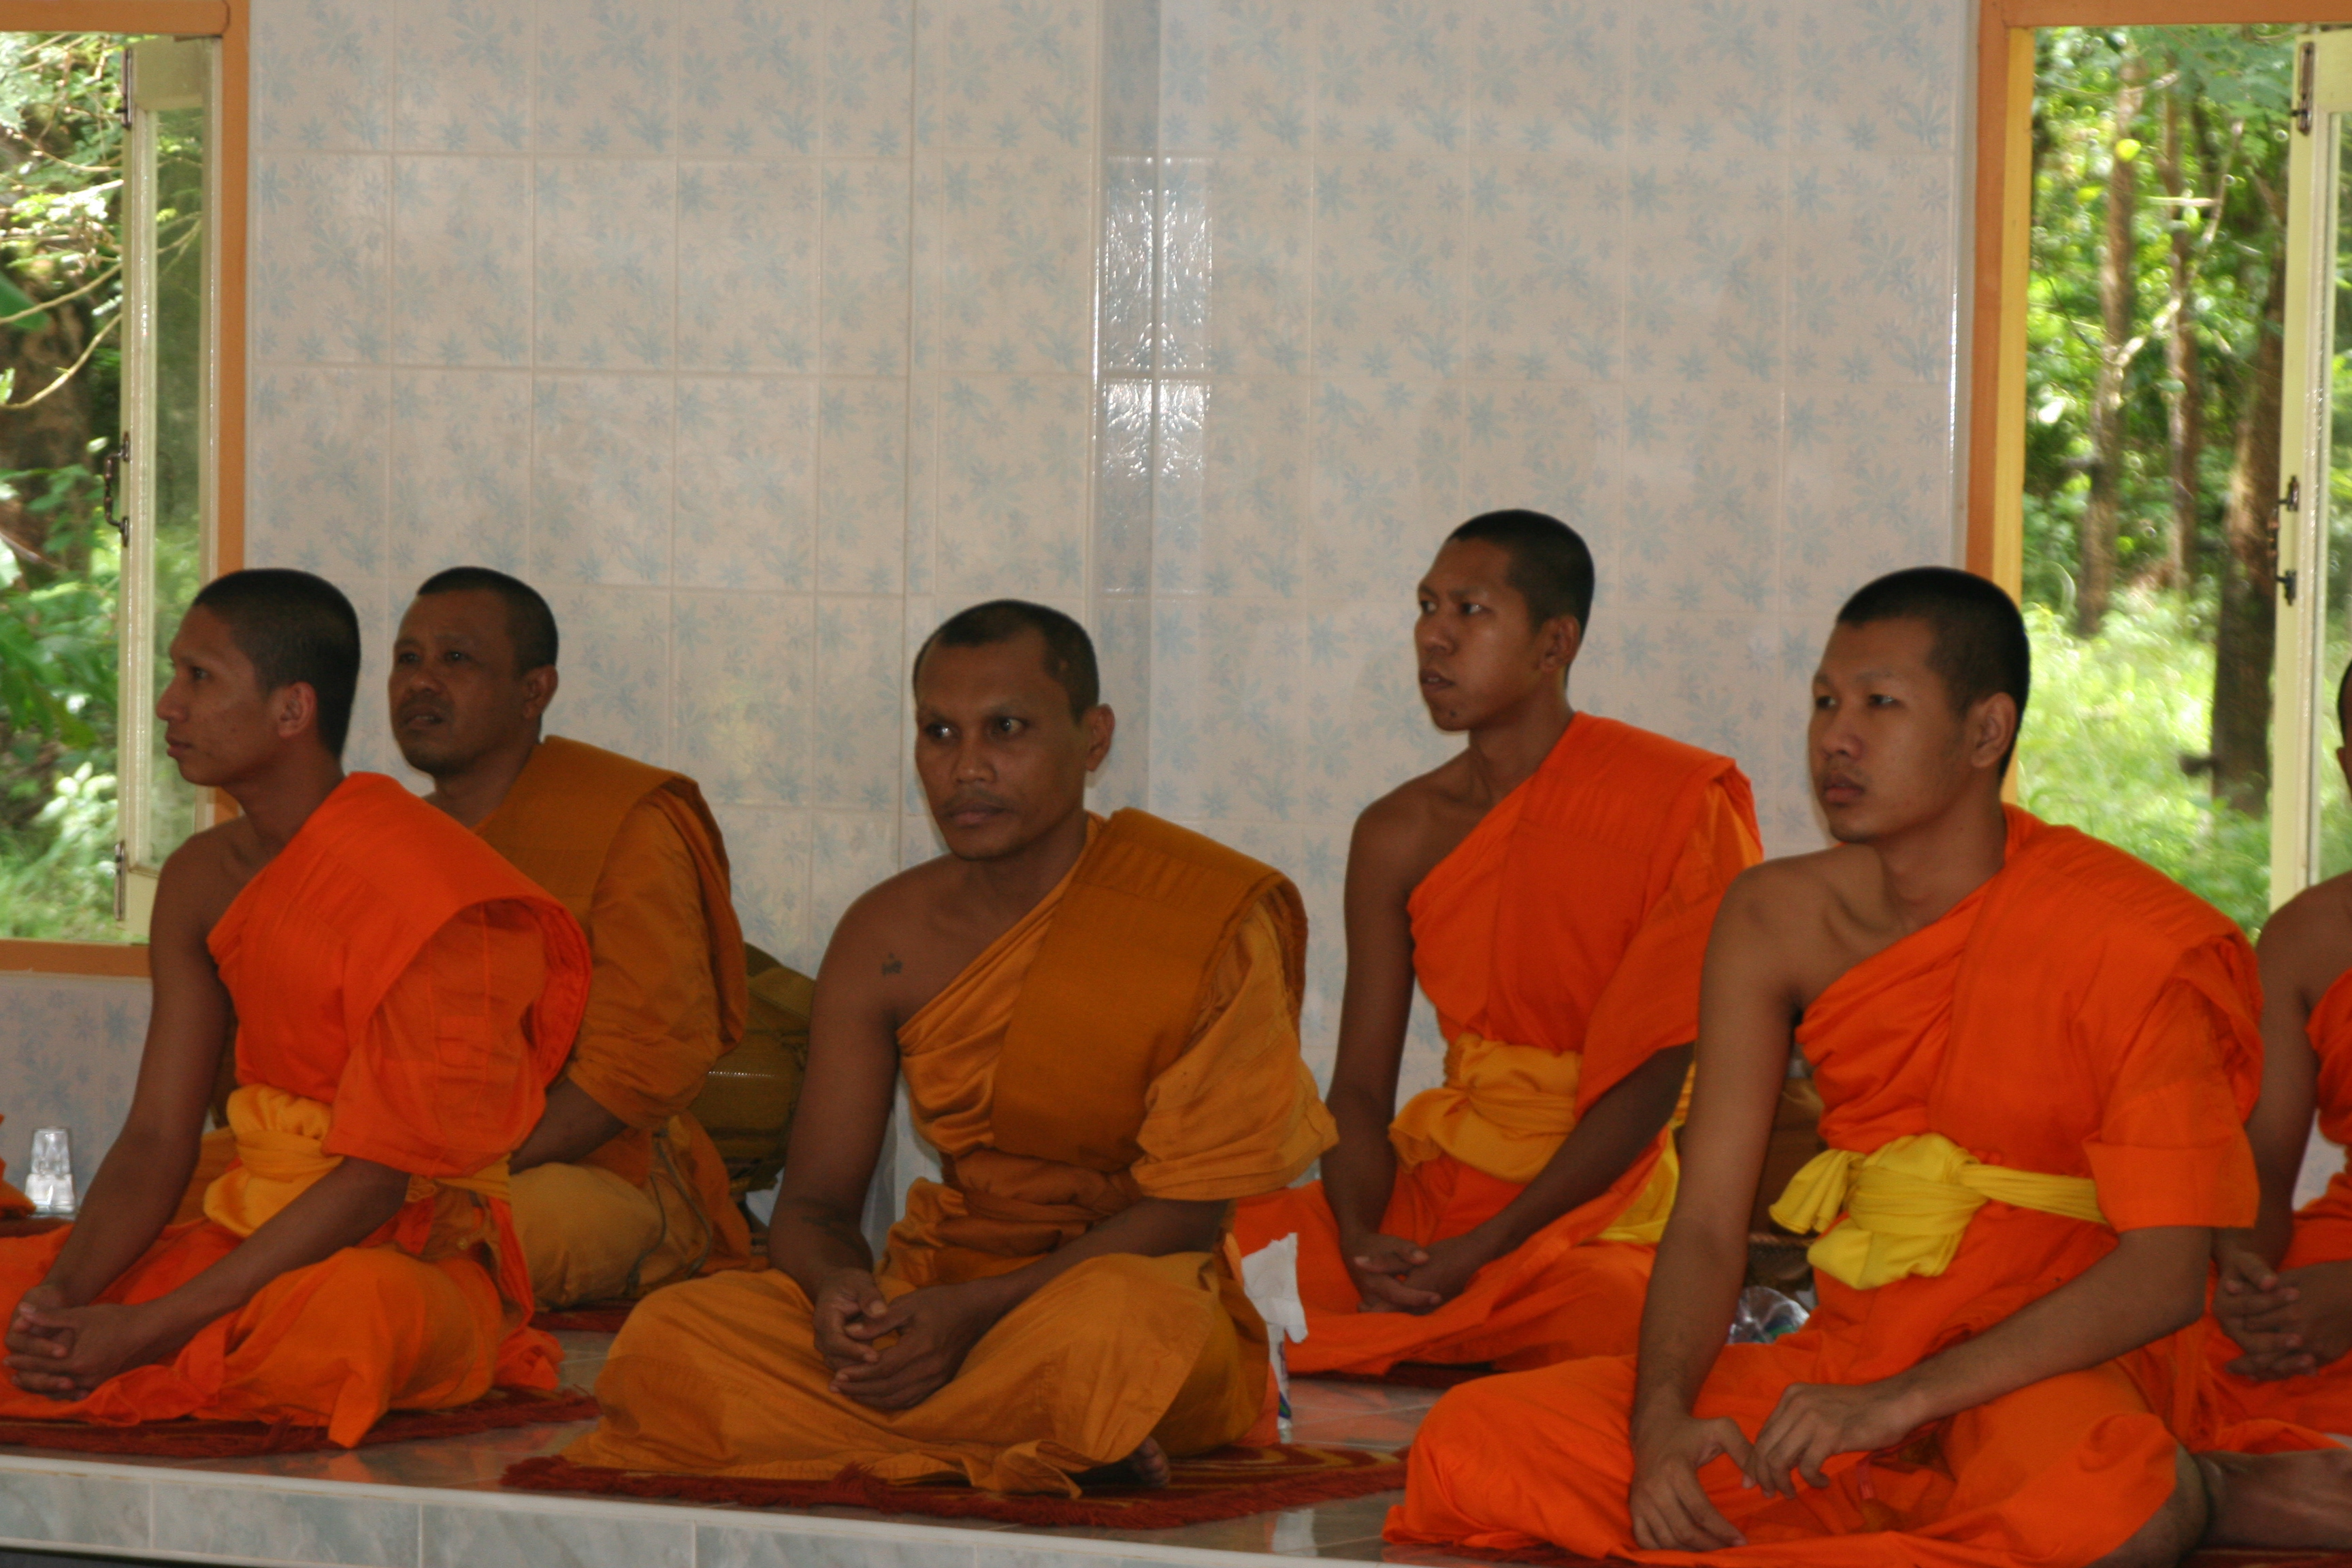 Chasing Monks in Luang Prabang